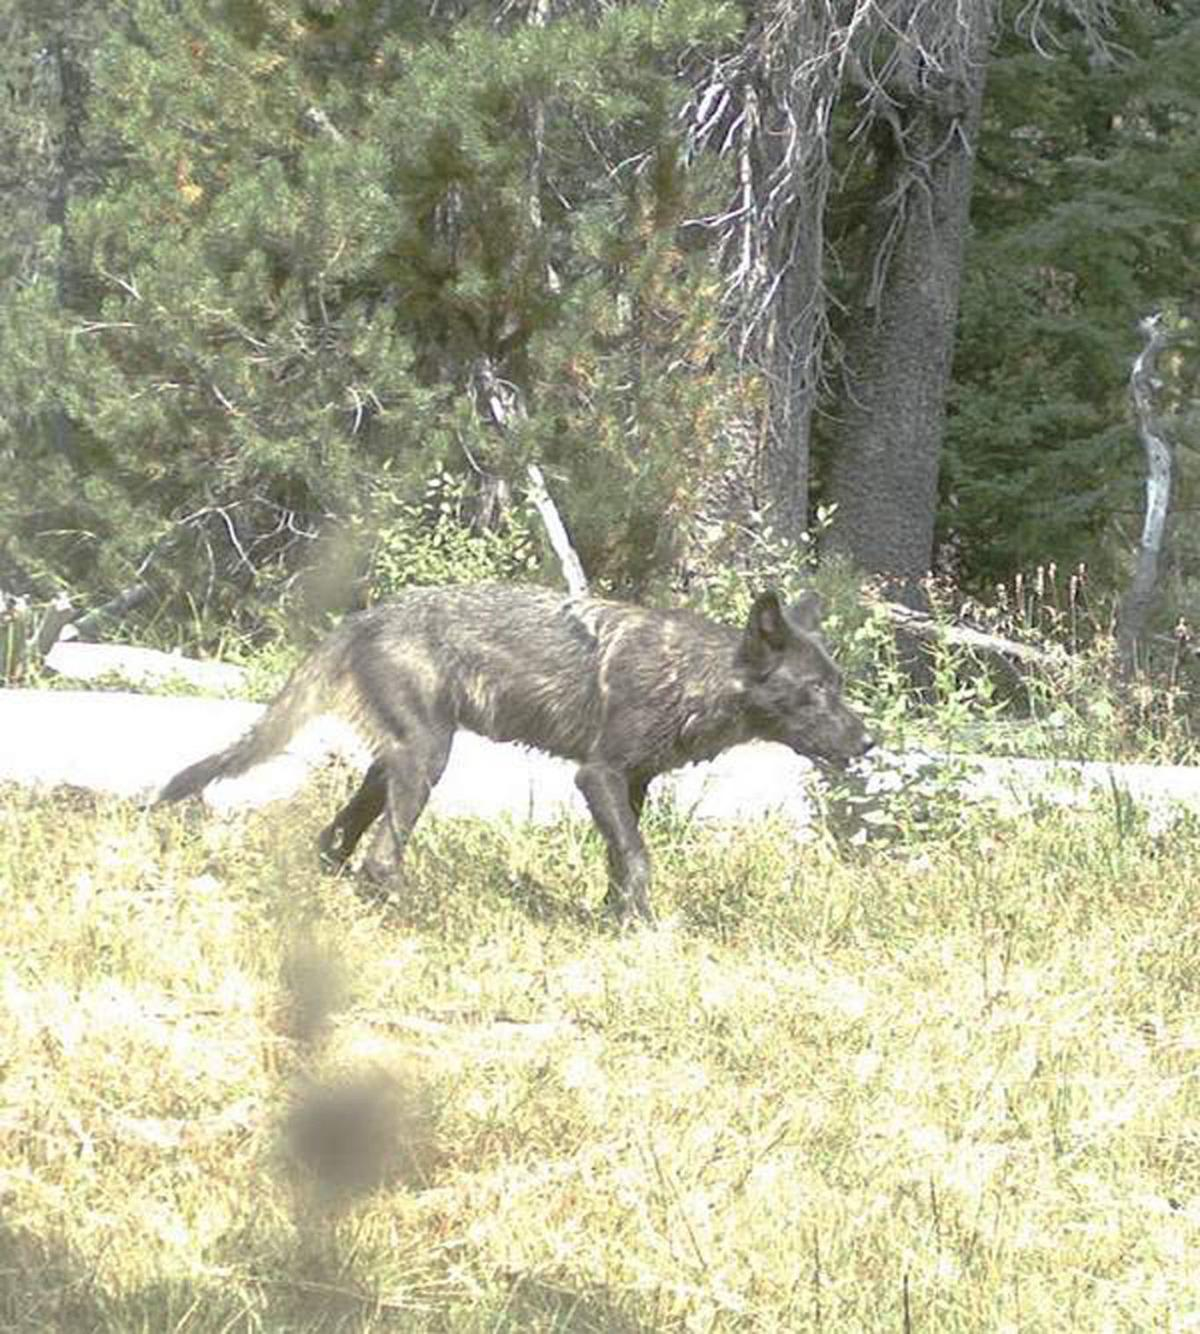 Officials, advocates promote coexistence of wolves, livestock